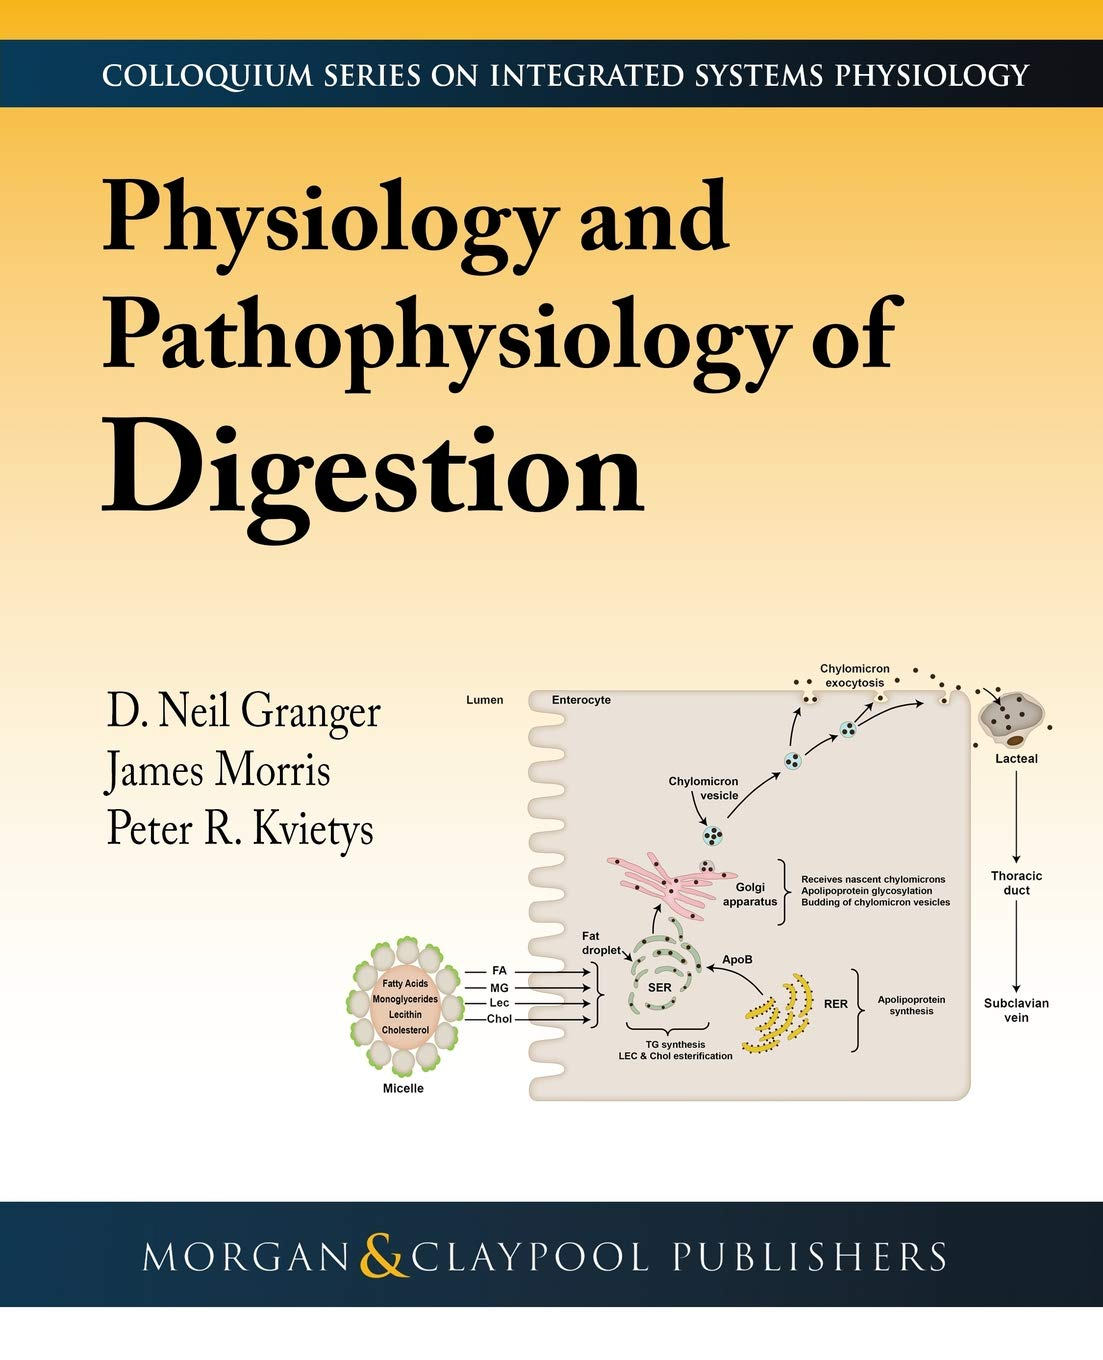 Buy Physiology and Pathophysiology of Digestion (Colloquium